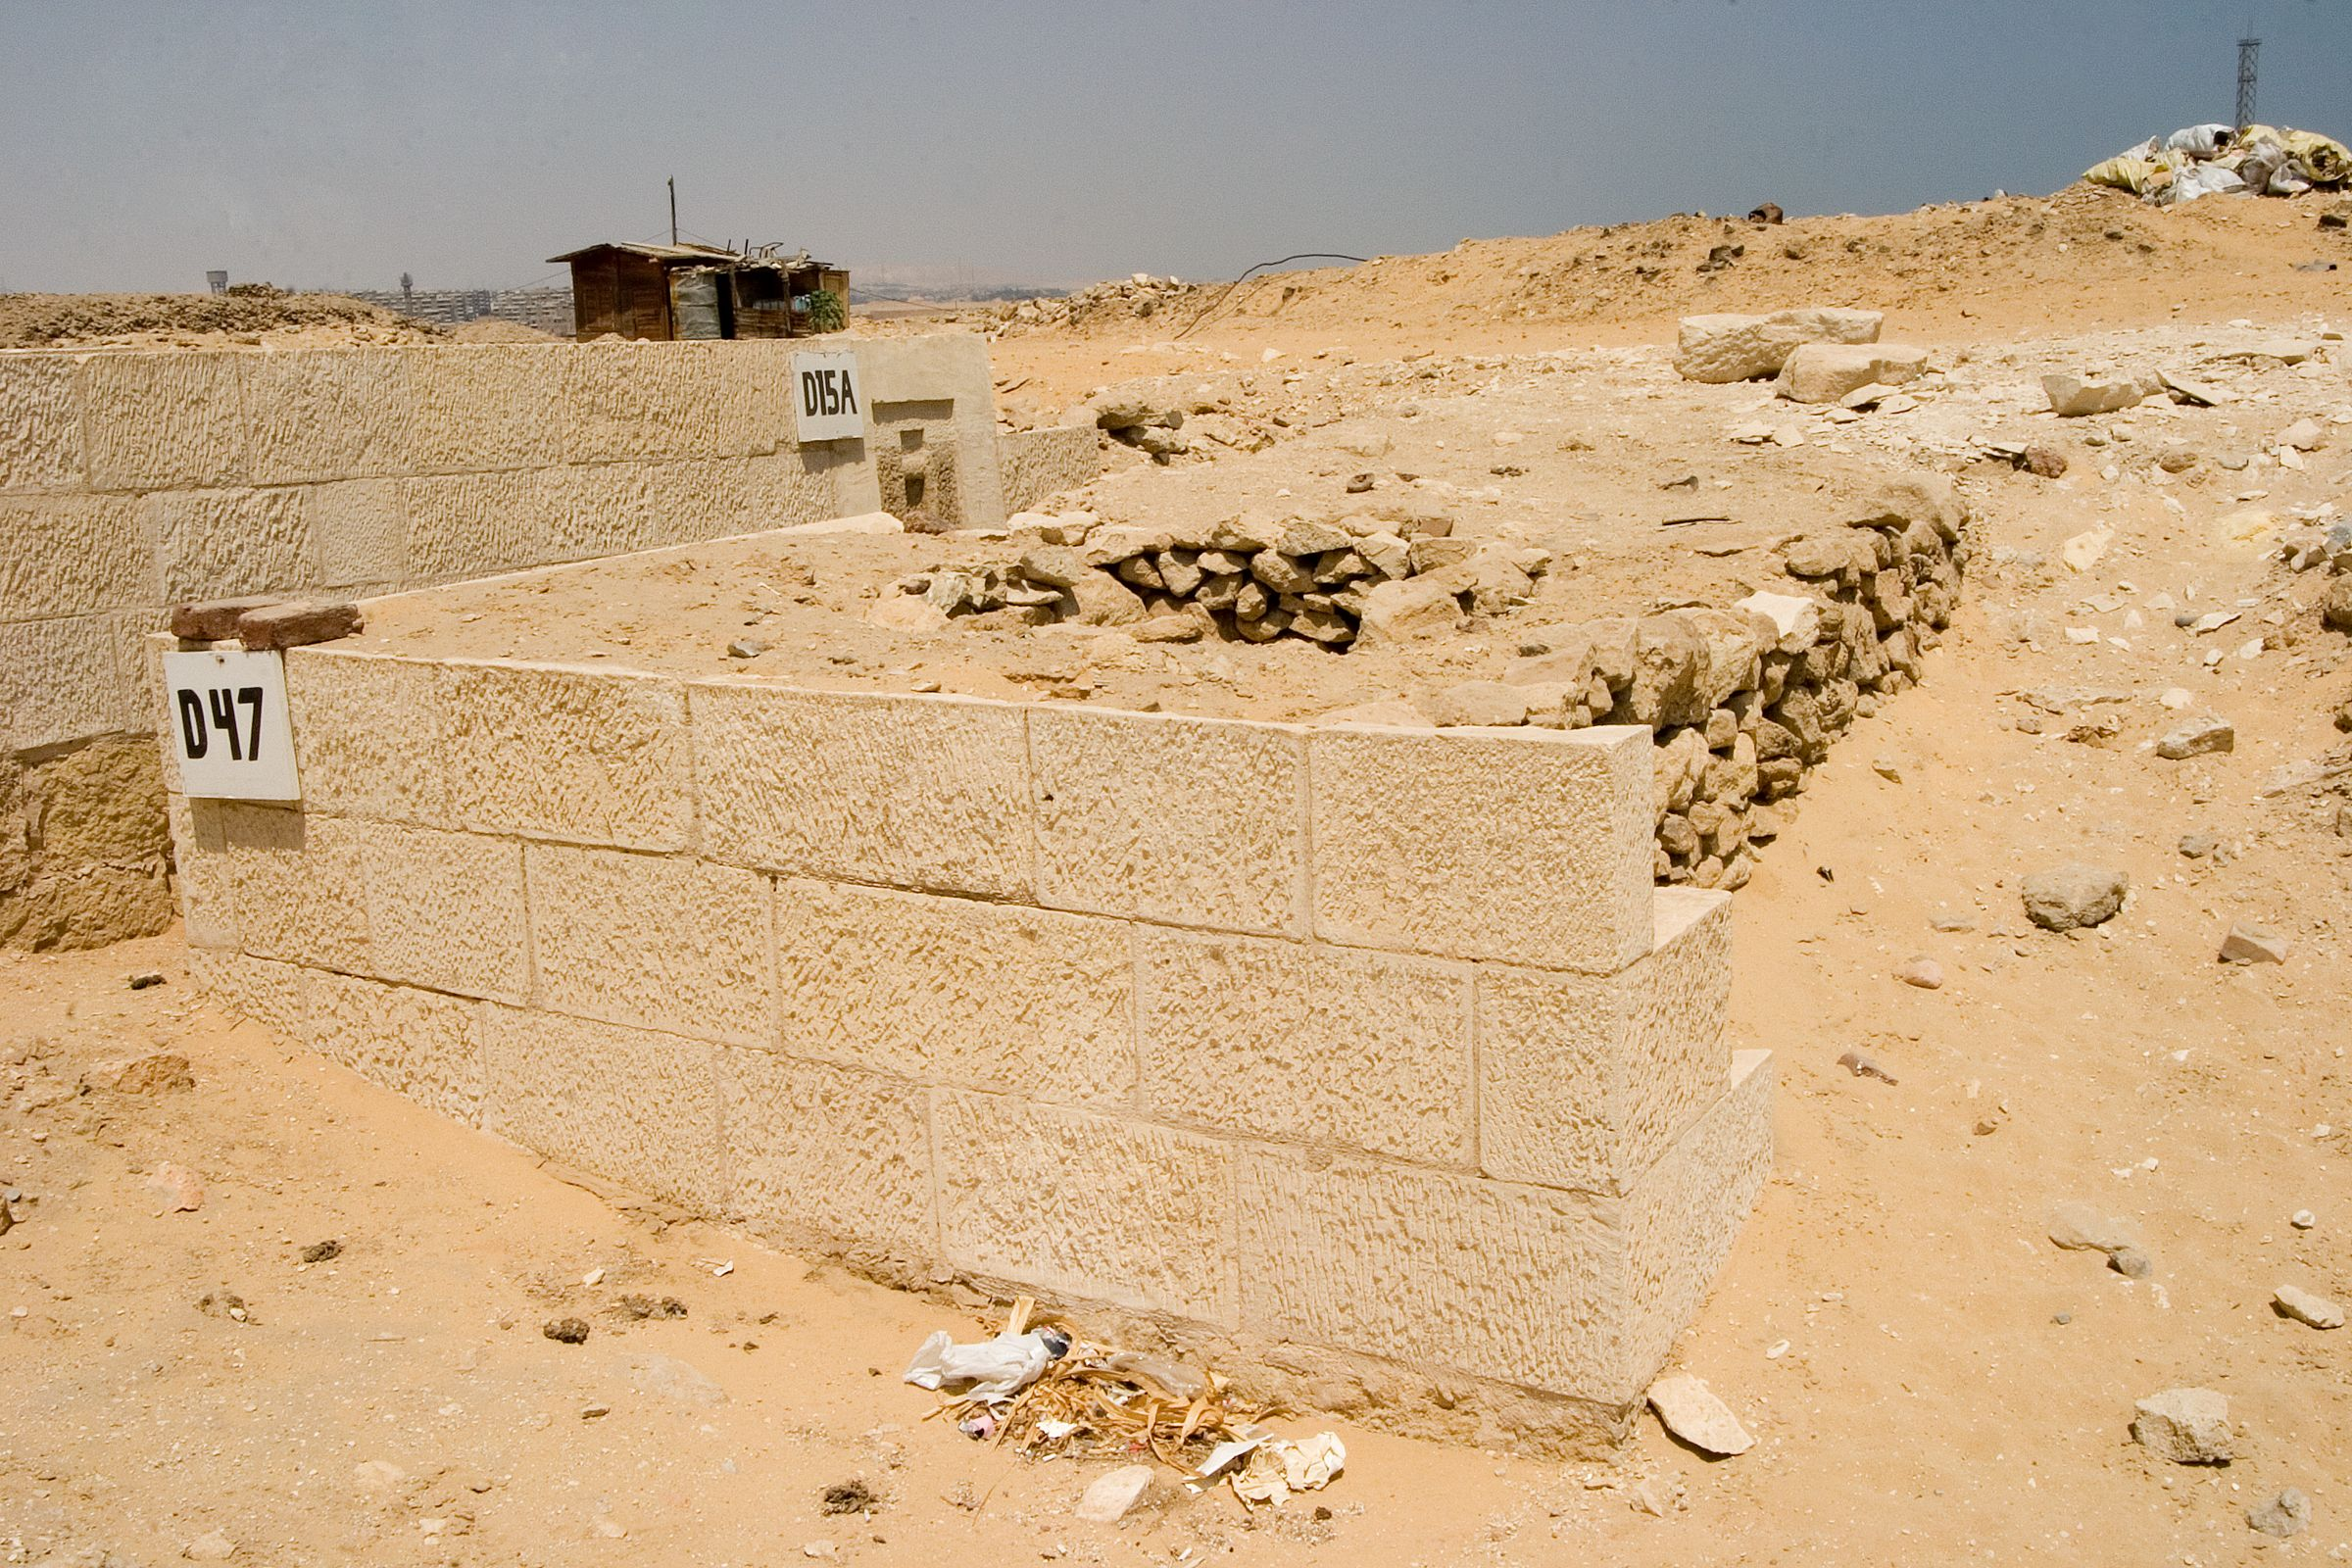 Western Cemetery: Site: Giza; View: D 47, D 15A